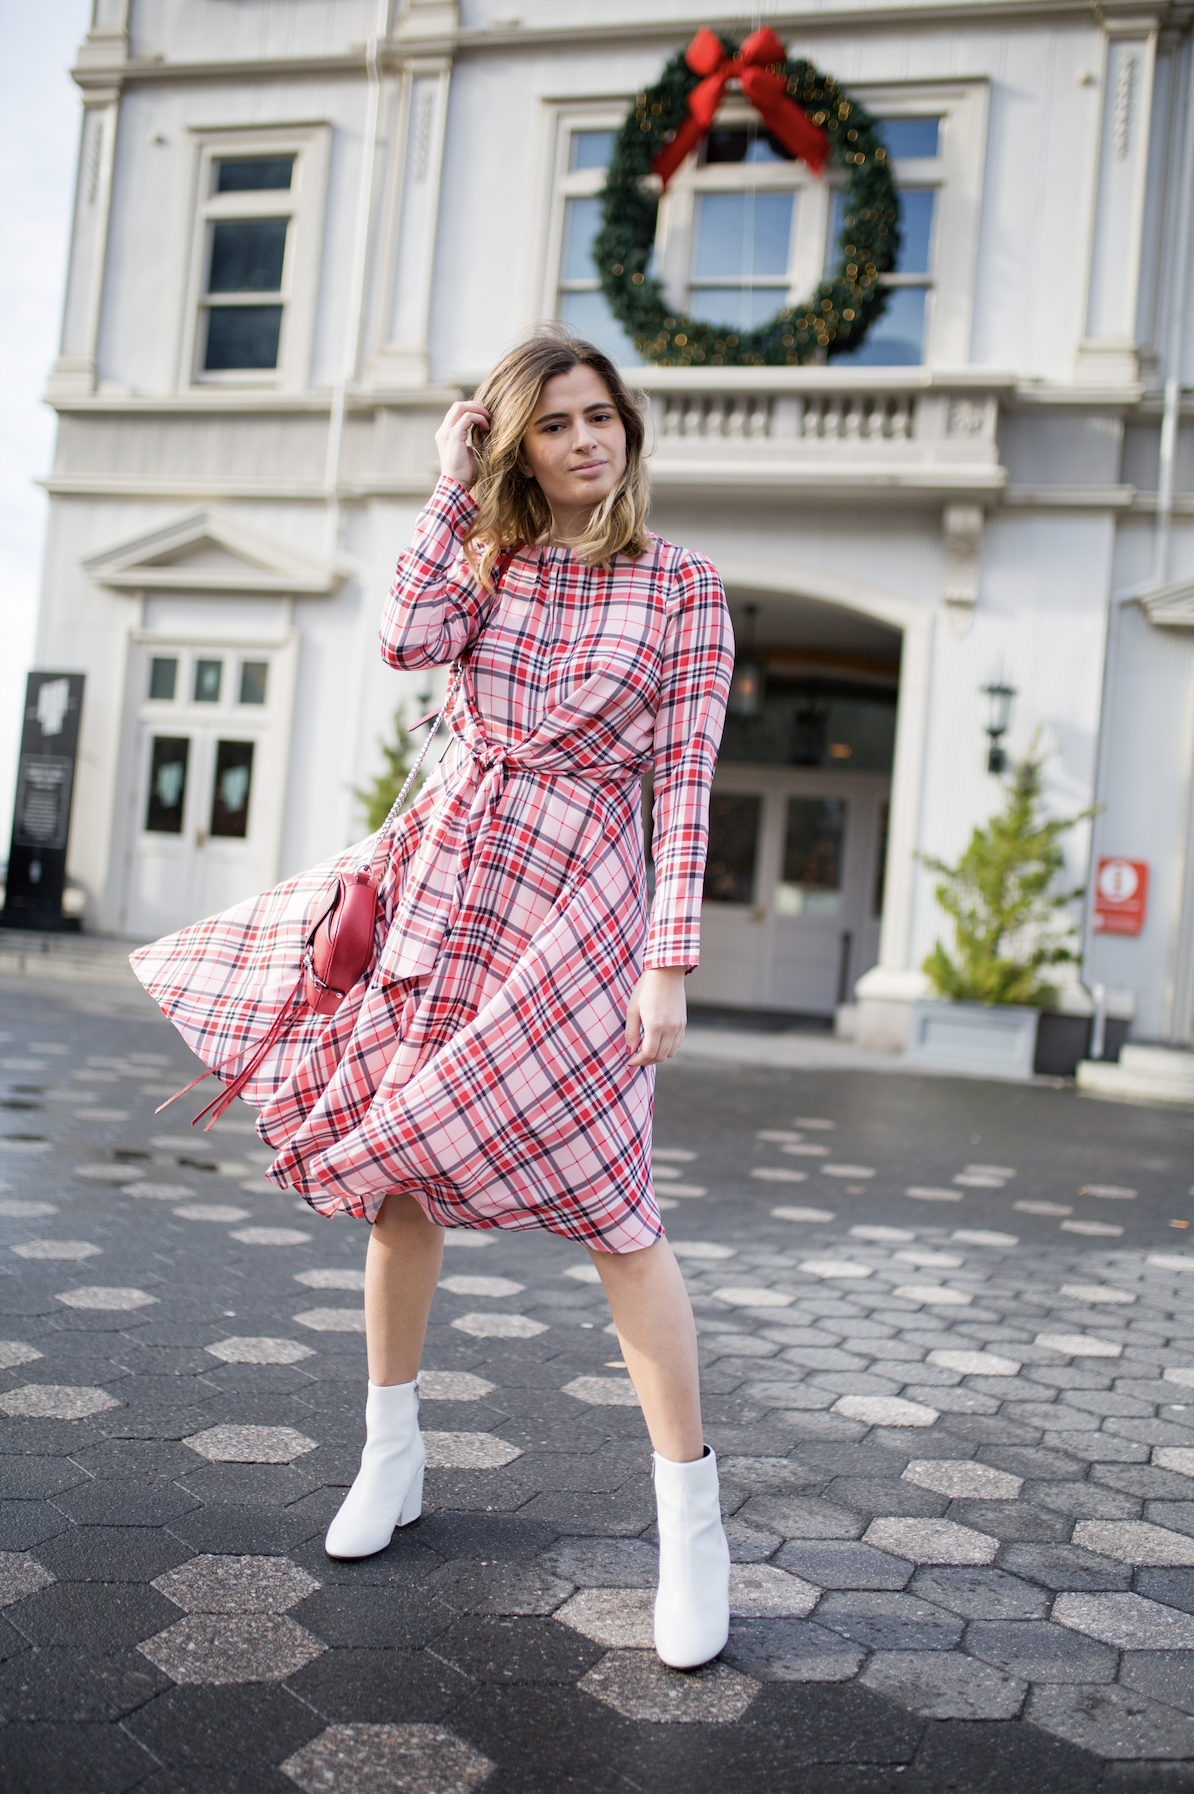 Plaid Midi Dress Outfit Holiday Outfit Ideas Christmas Dresses Christmas Outfit Ideas Ny Nyc Fashion Nyc Street Style Winter Street Fashion Photography [ 1794 x 1194 Pixel ]